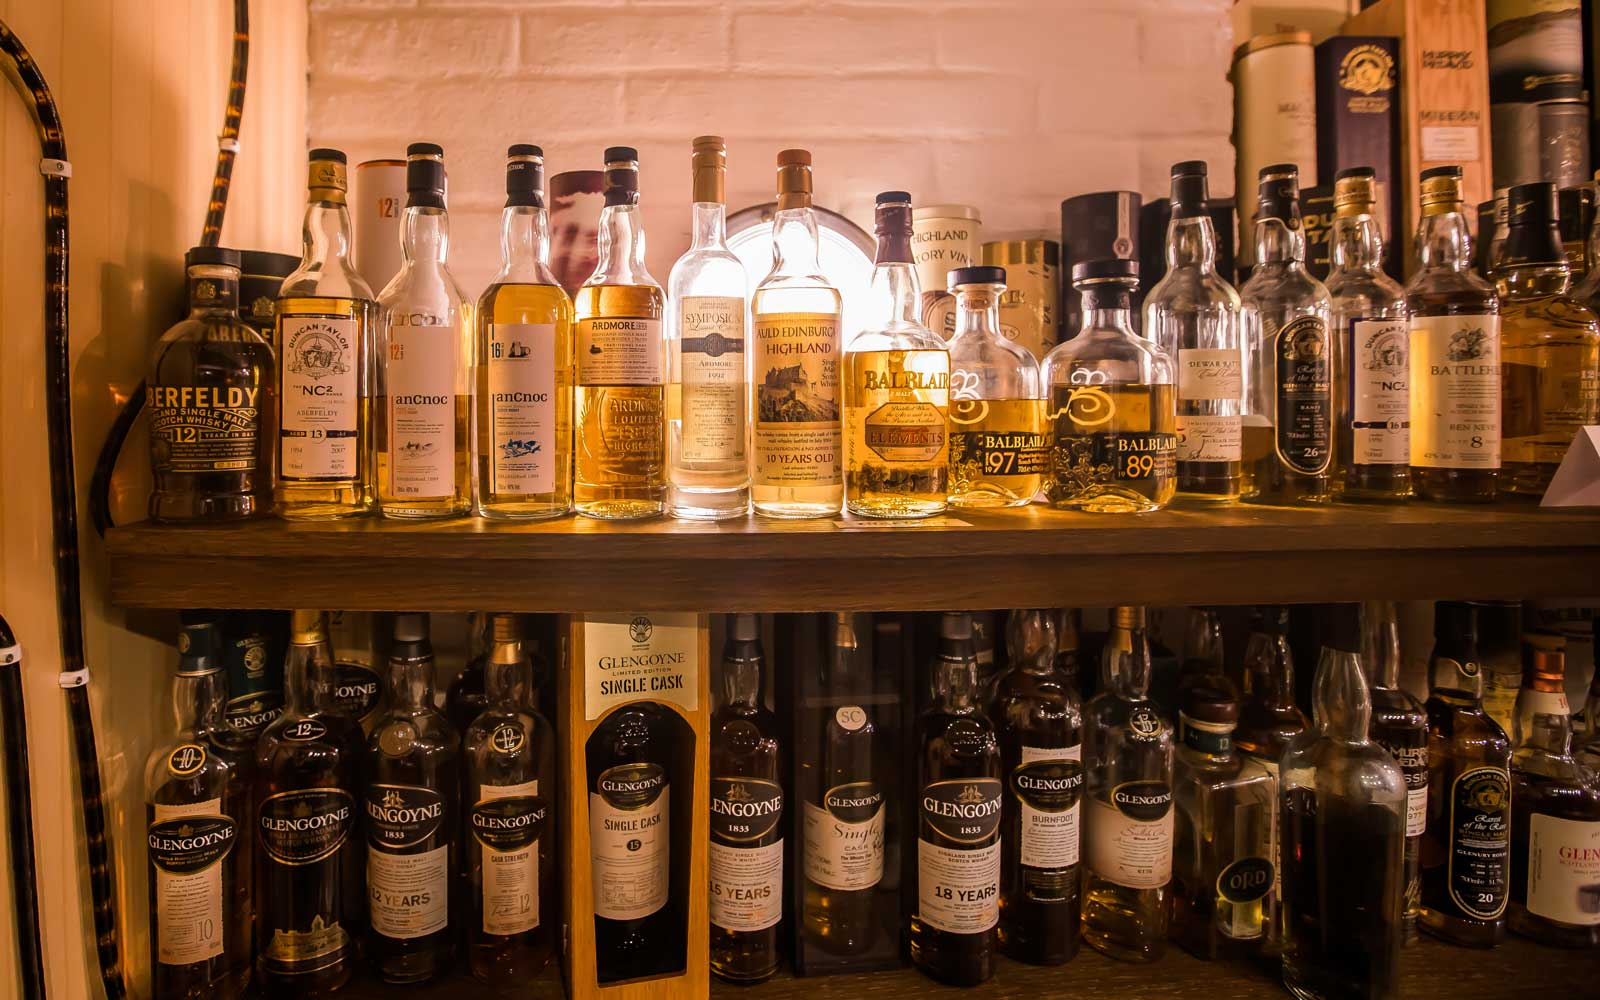 Hotel Skansen in Sweden is home to the most varieties of whisky that are commercially available.